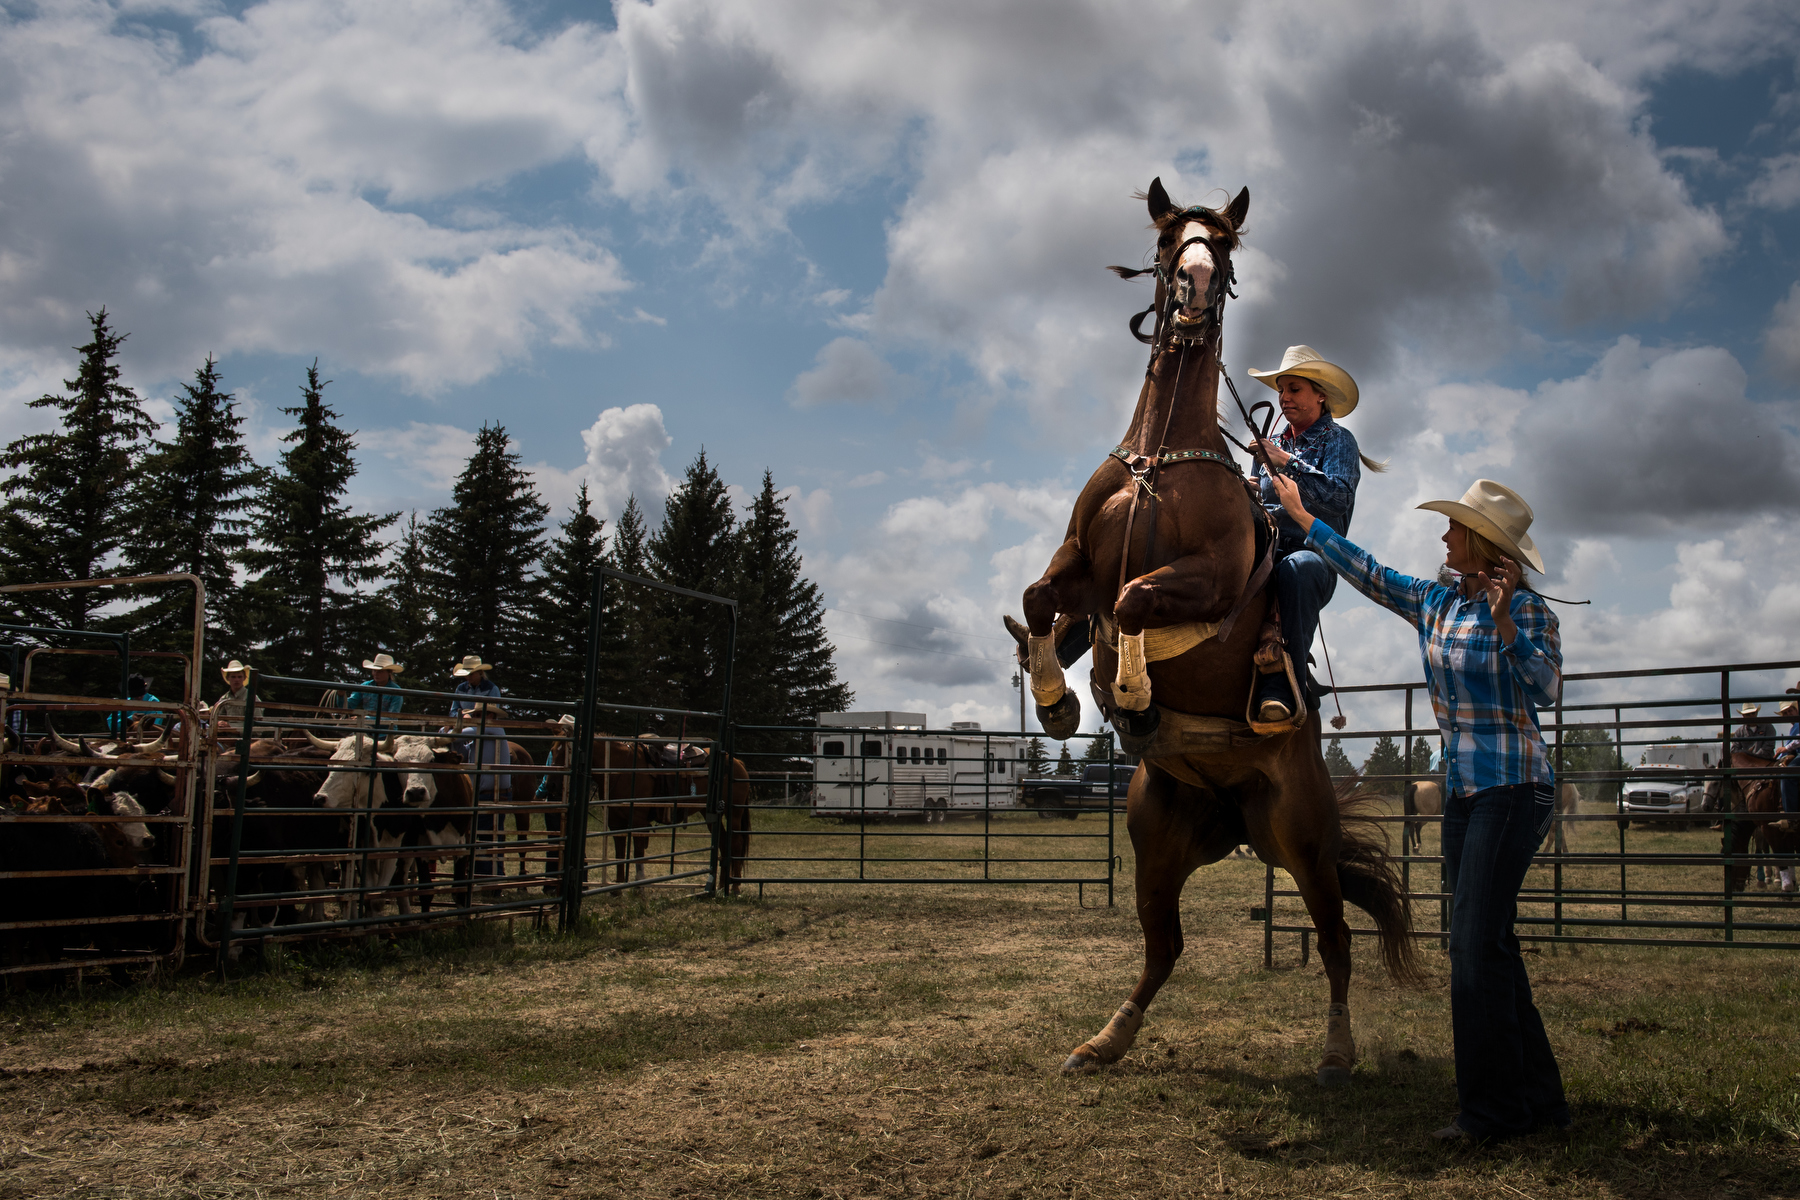 "45º31'30.0""N, 102º28'11.9""W. 111 miles from the nearest McDonald's.   A horse rears up as a young woman gets ready to take off for her turn at goat tying at a rodeo in Bison, SD."